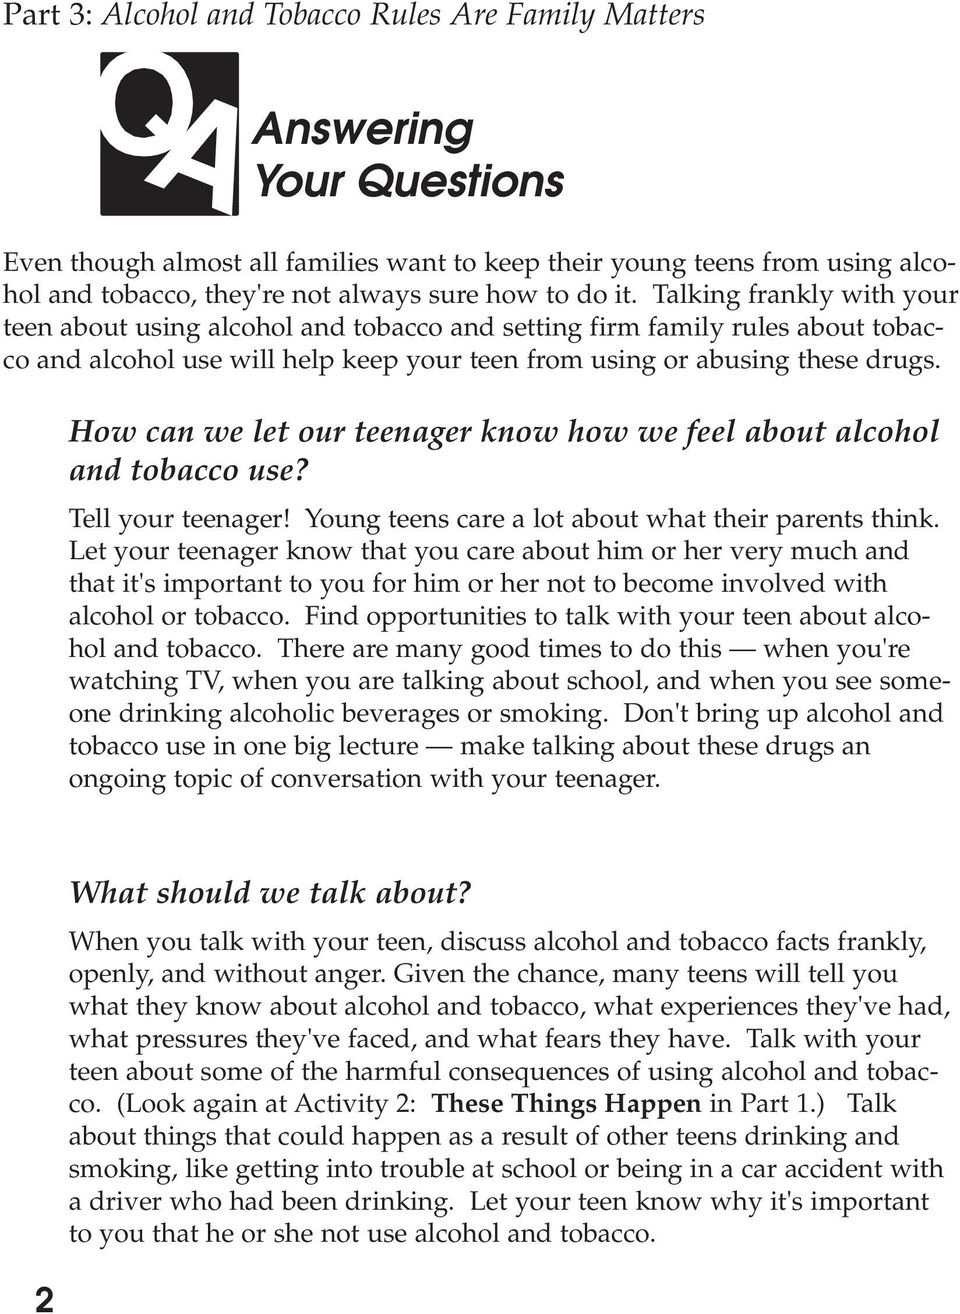 How can we let our teenager know how we feel about alcohol and tobacco use? Tell your teenager! Young teens care a lot about what their parents think.